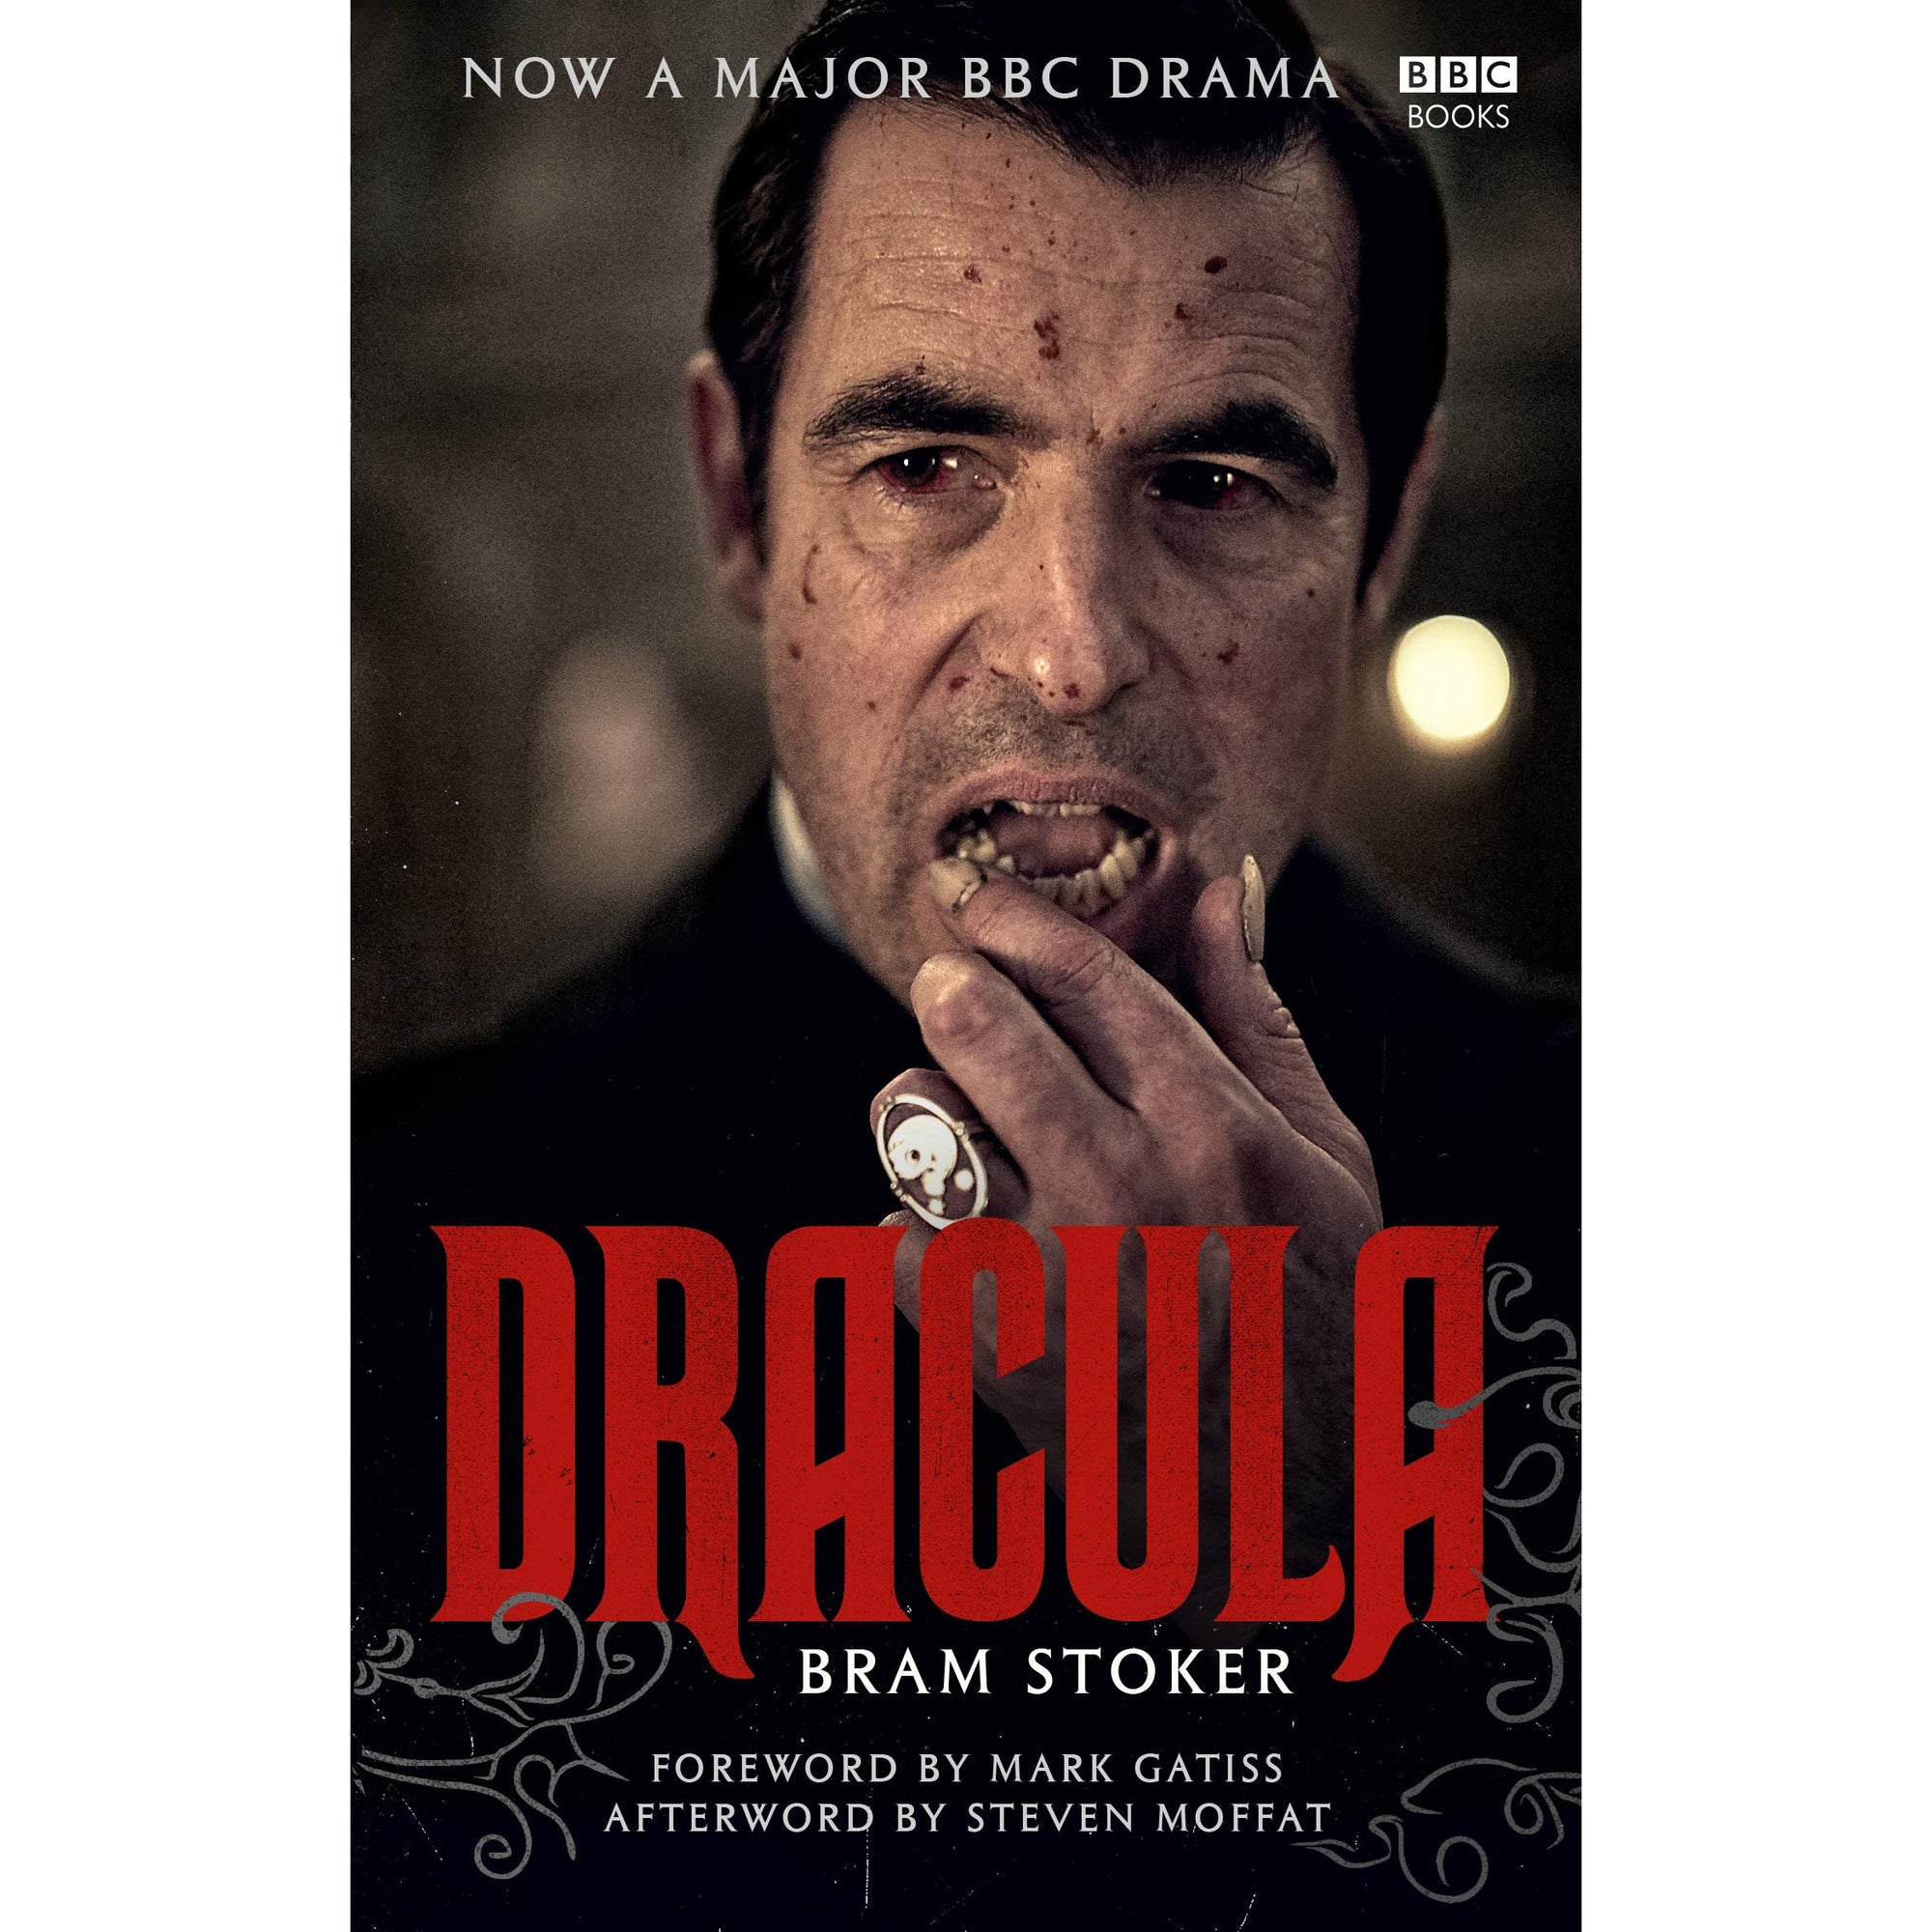 BBC Books TV Tie-in edition of Dracula